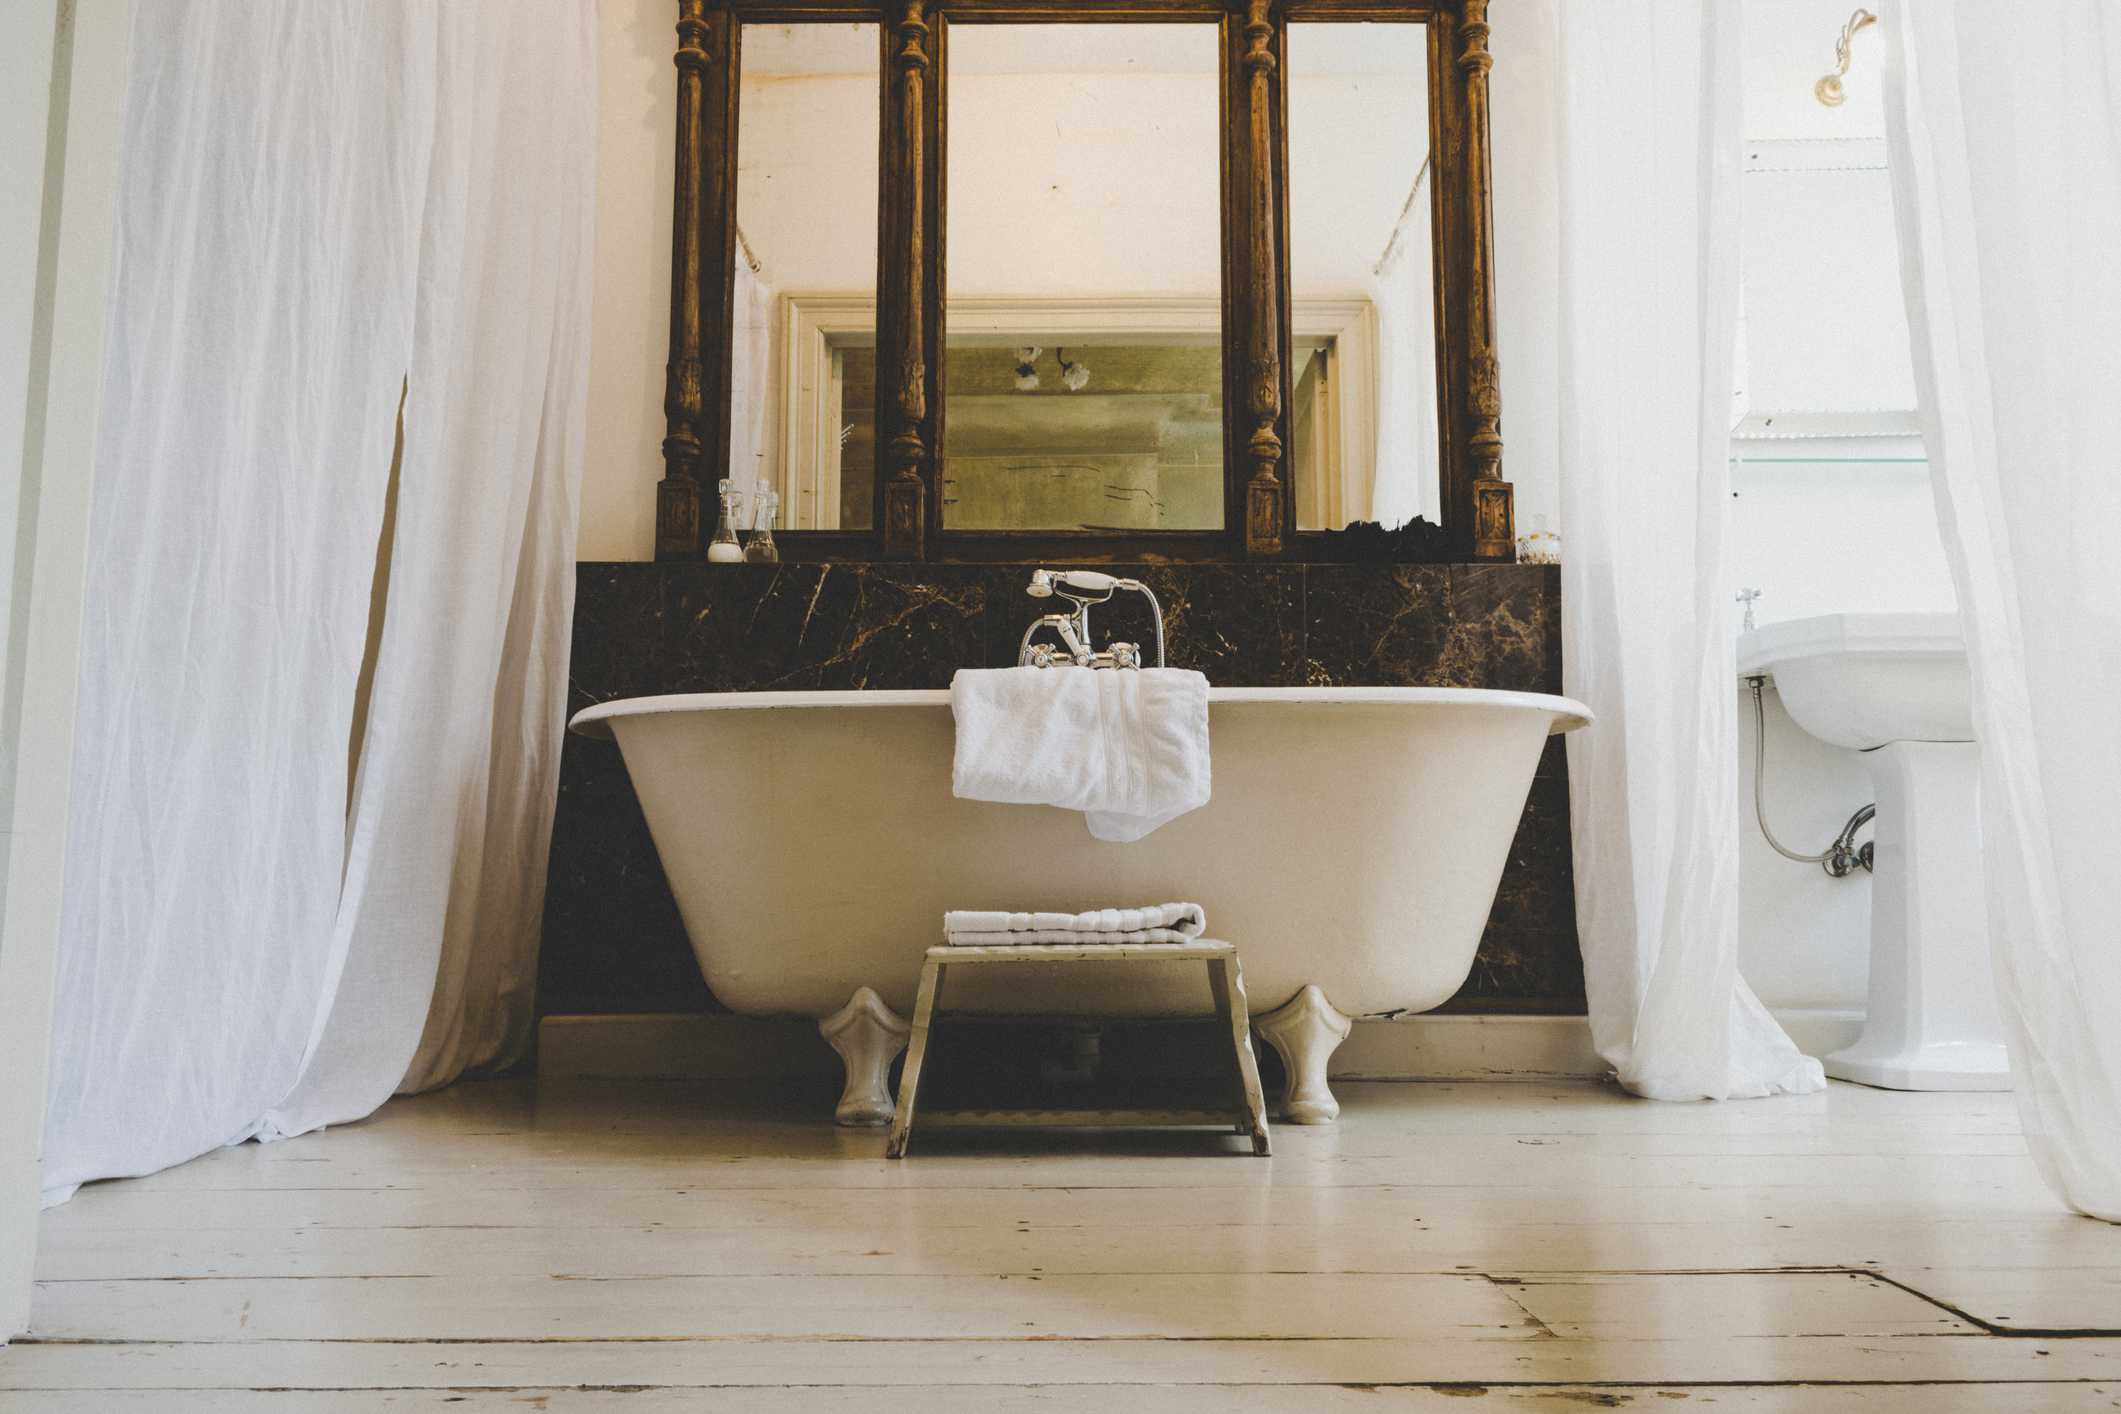 Low angle view of a clawfoot bathtub